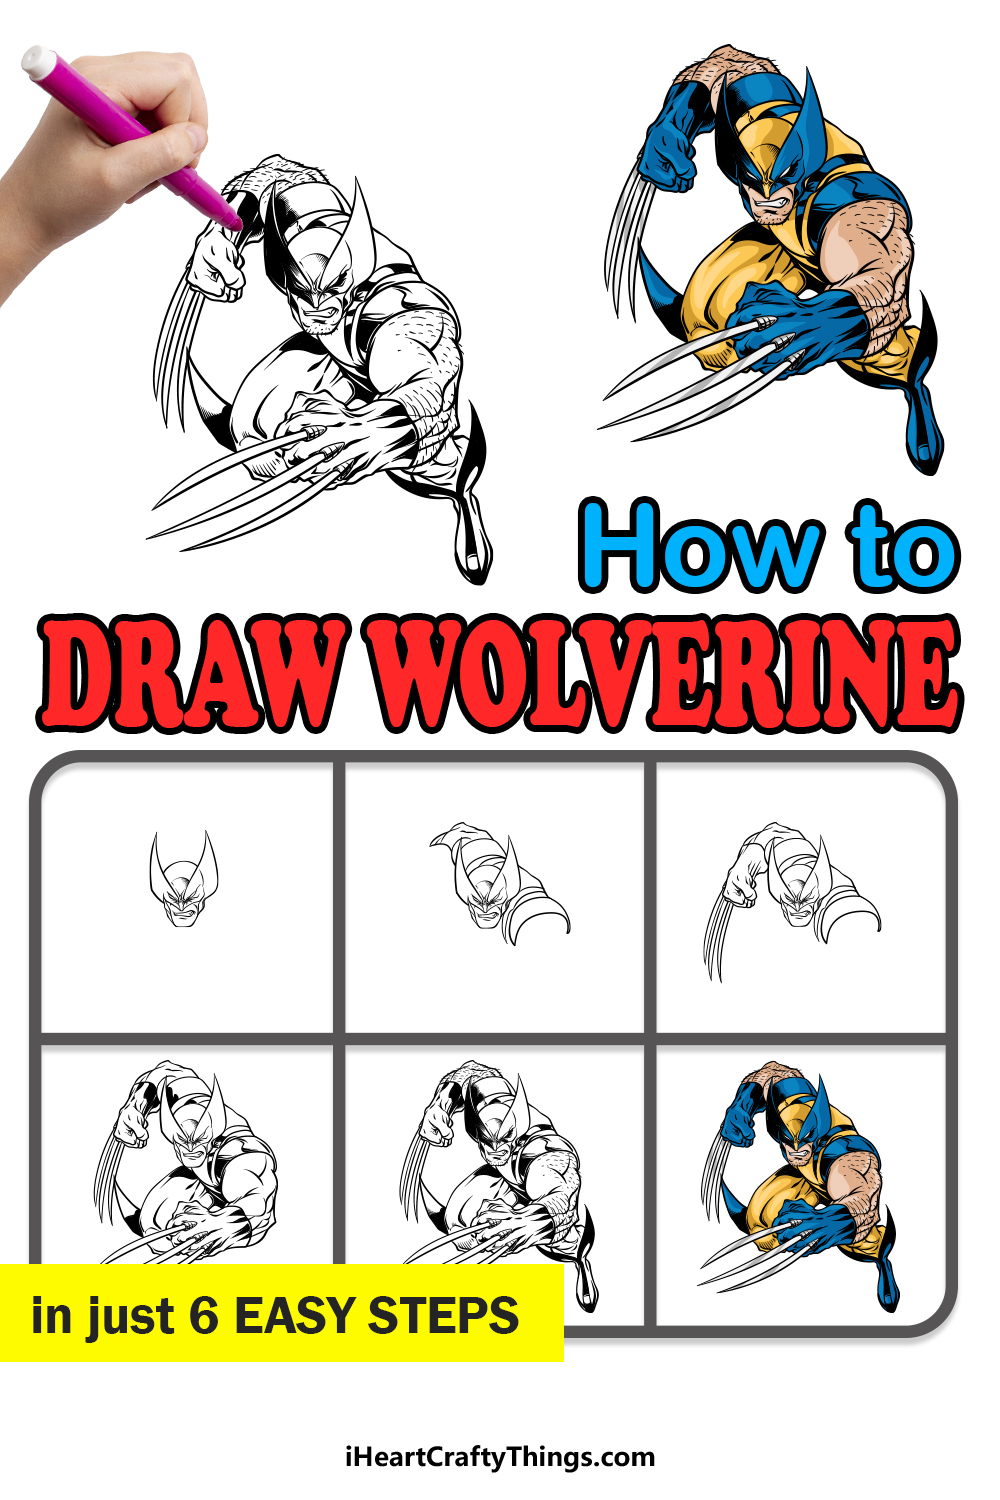 how to draw wolverine in 6 easy steps